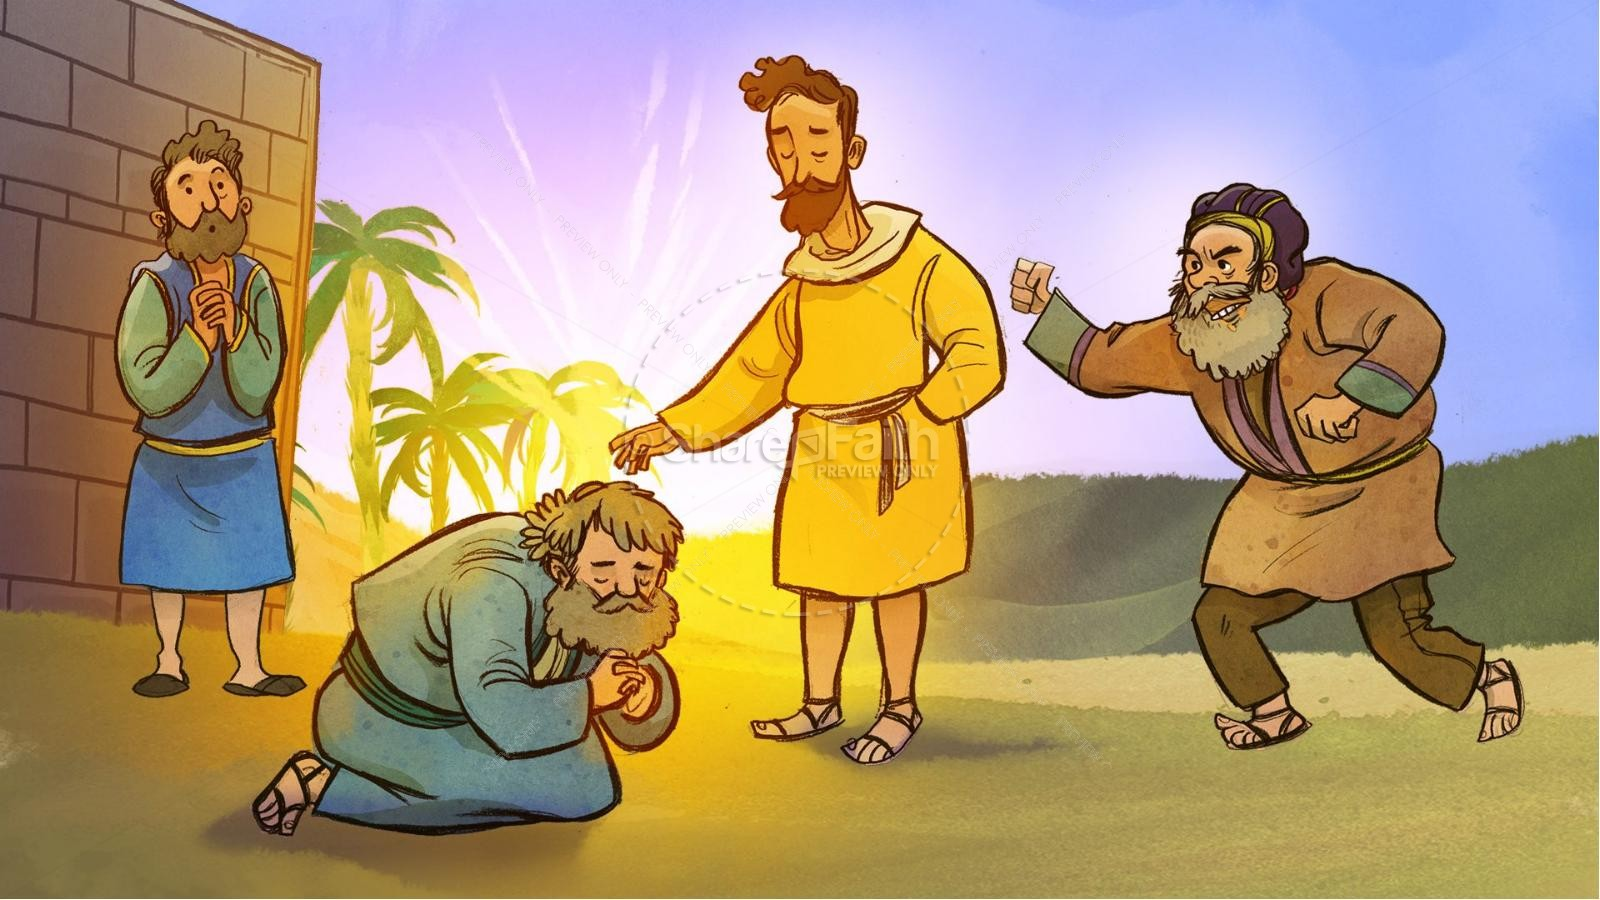 acts 7 the stoning of stephen kids bible story kids bible stories